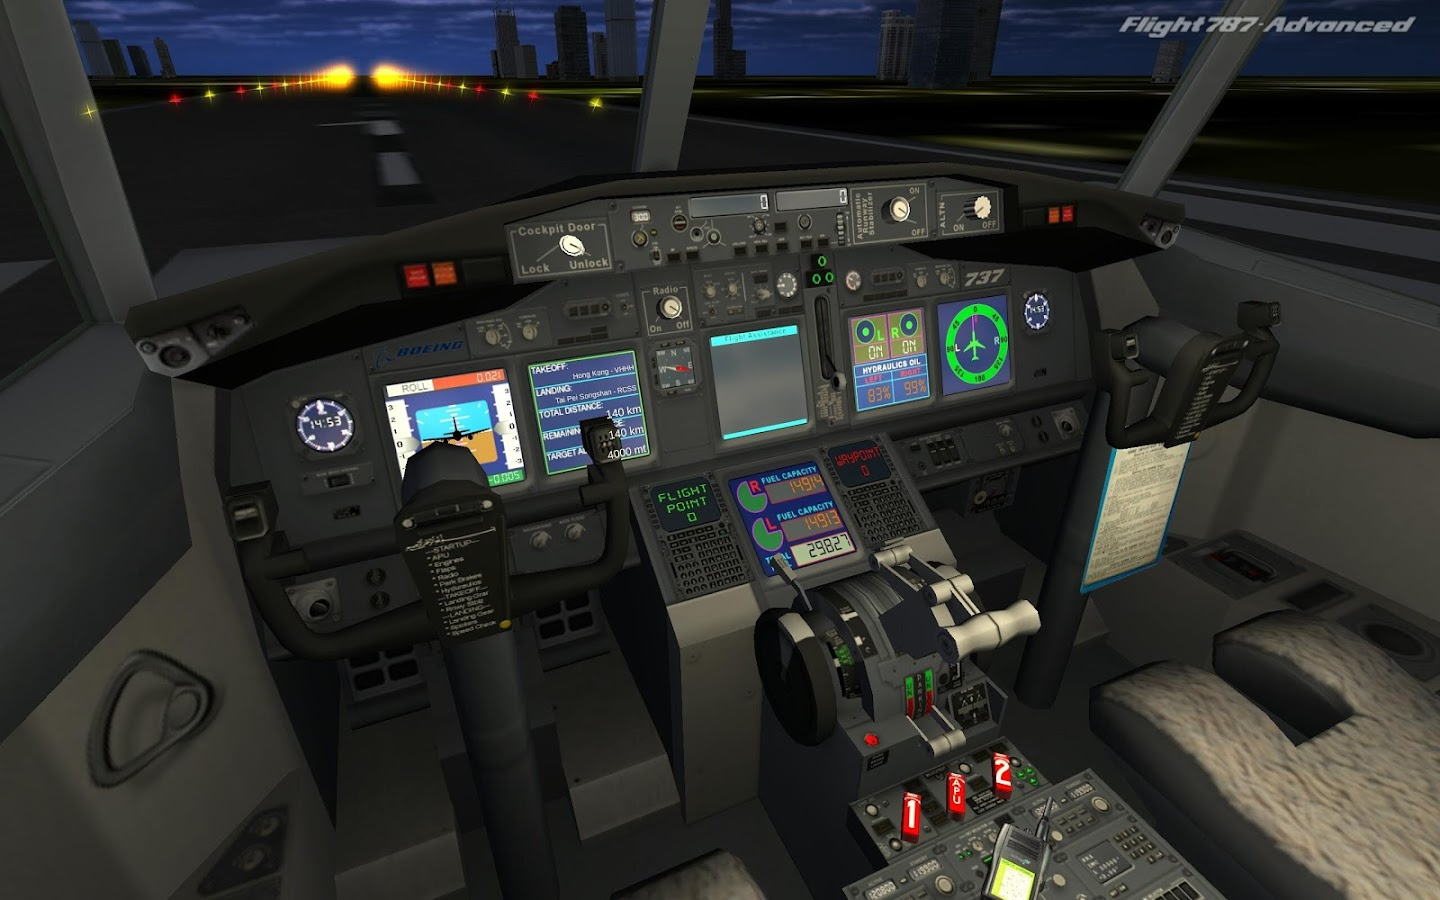 Flight 787 - Advanced Screenshot 1